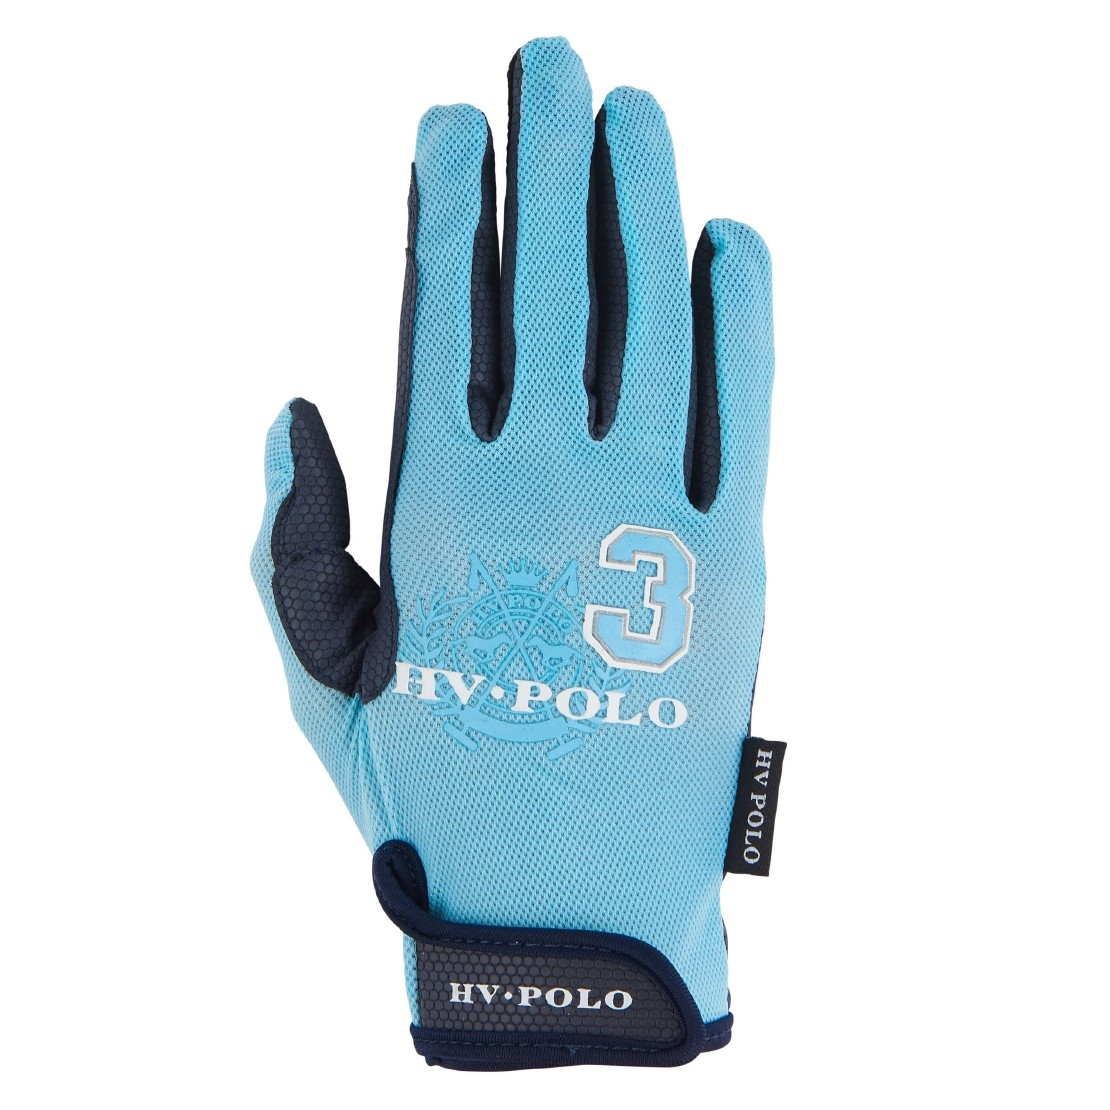 Handschuhe Favouritas S Blue Turquoise